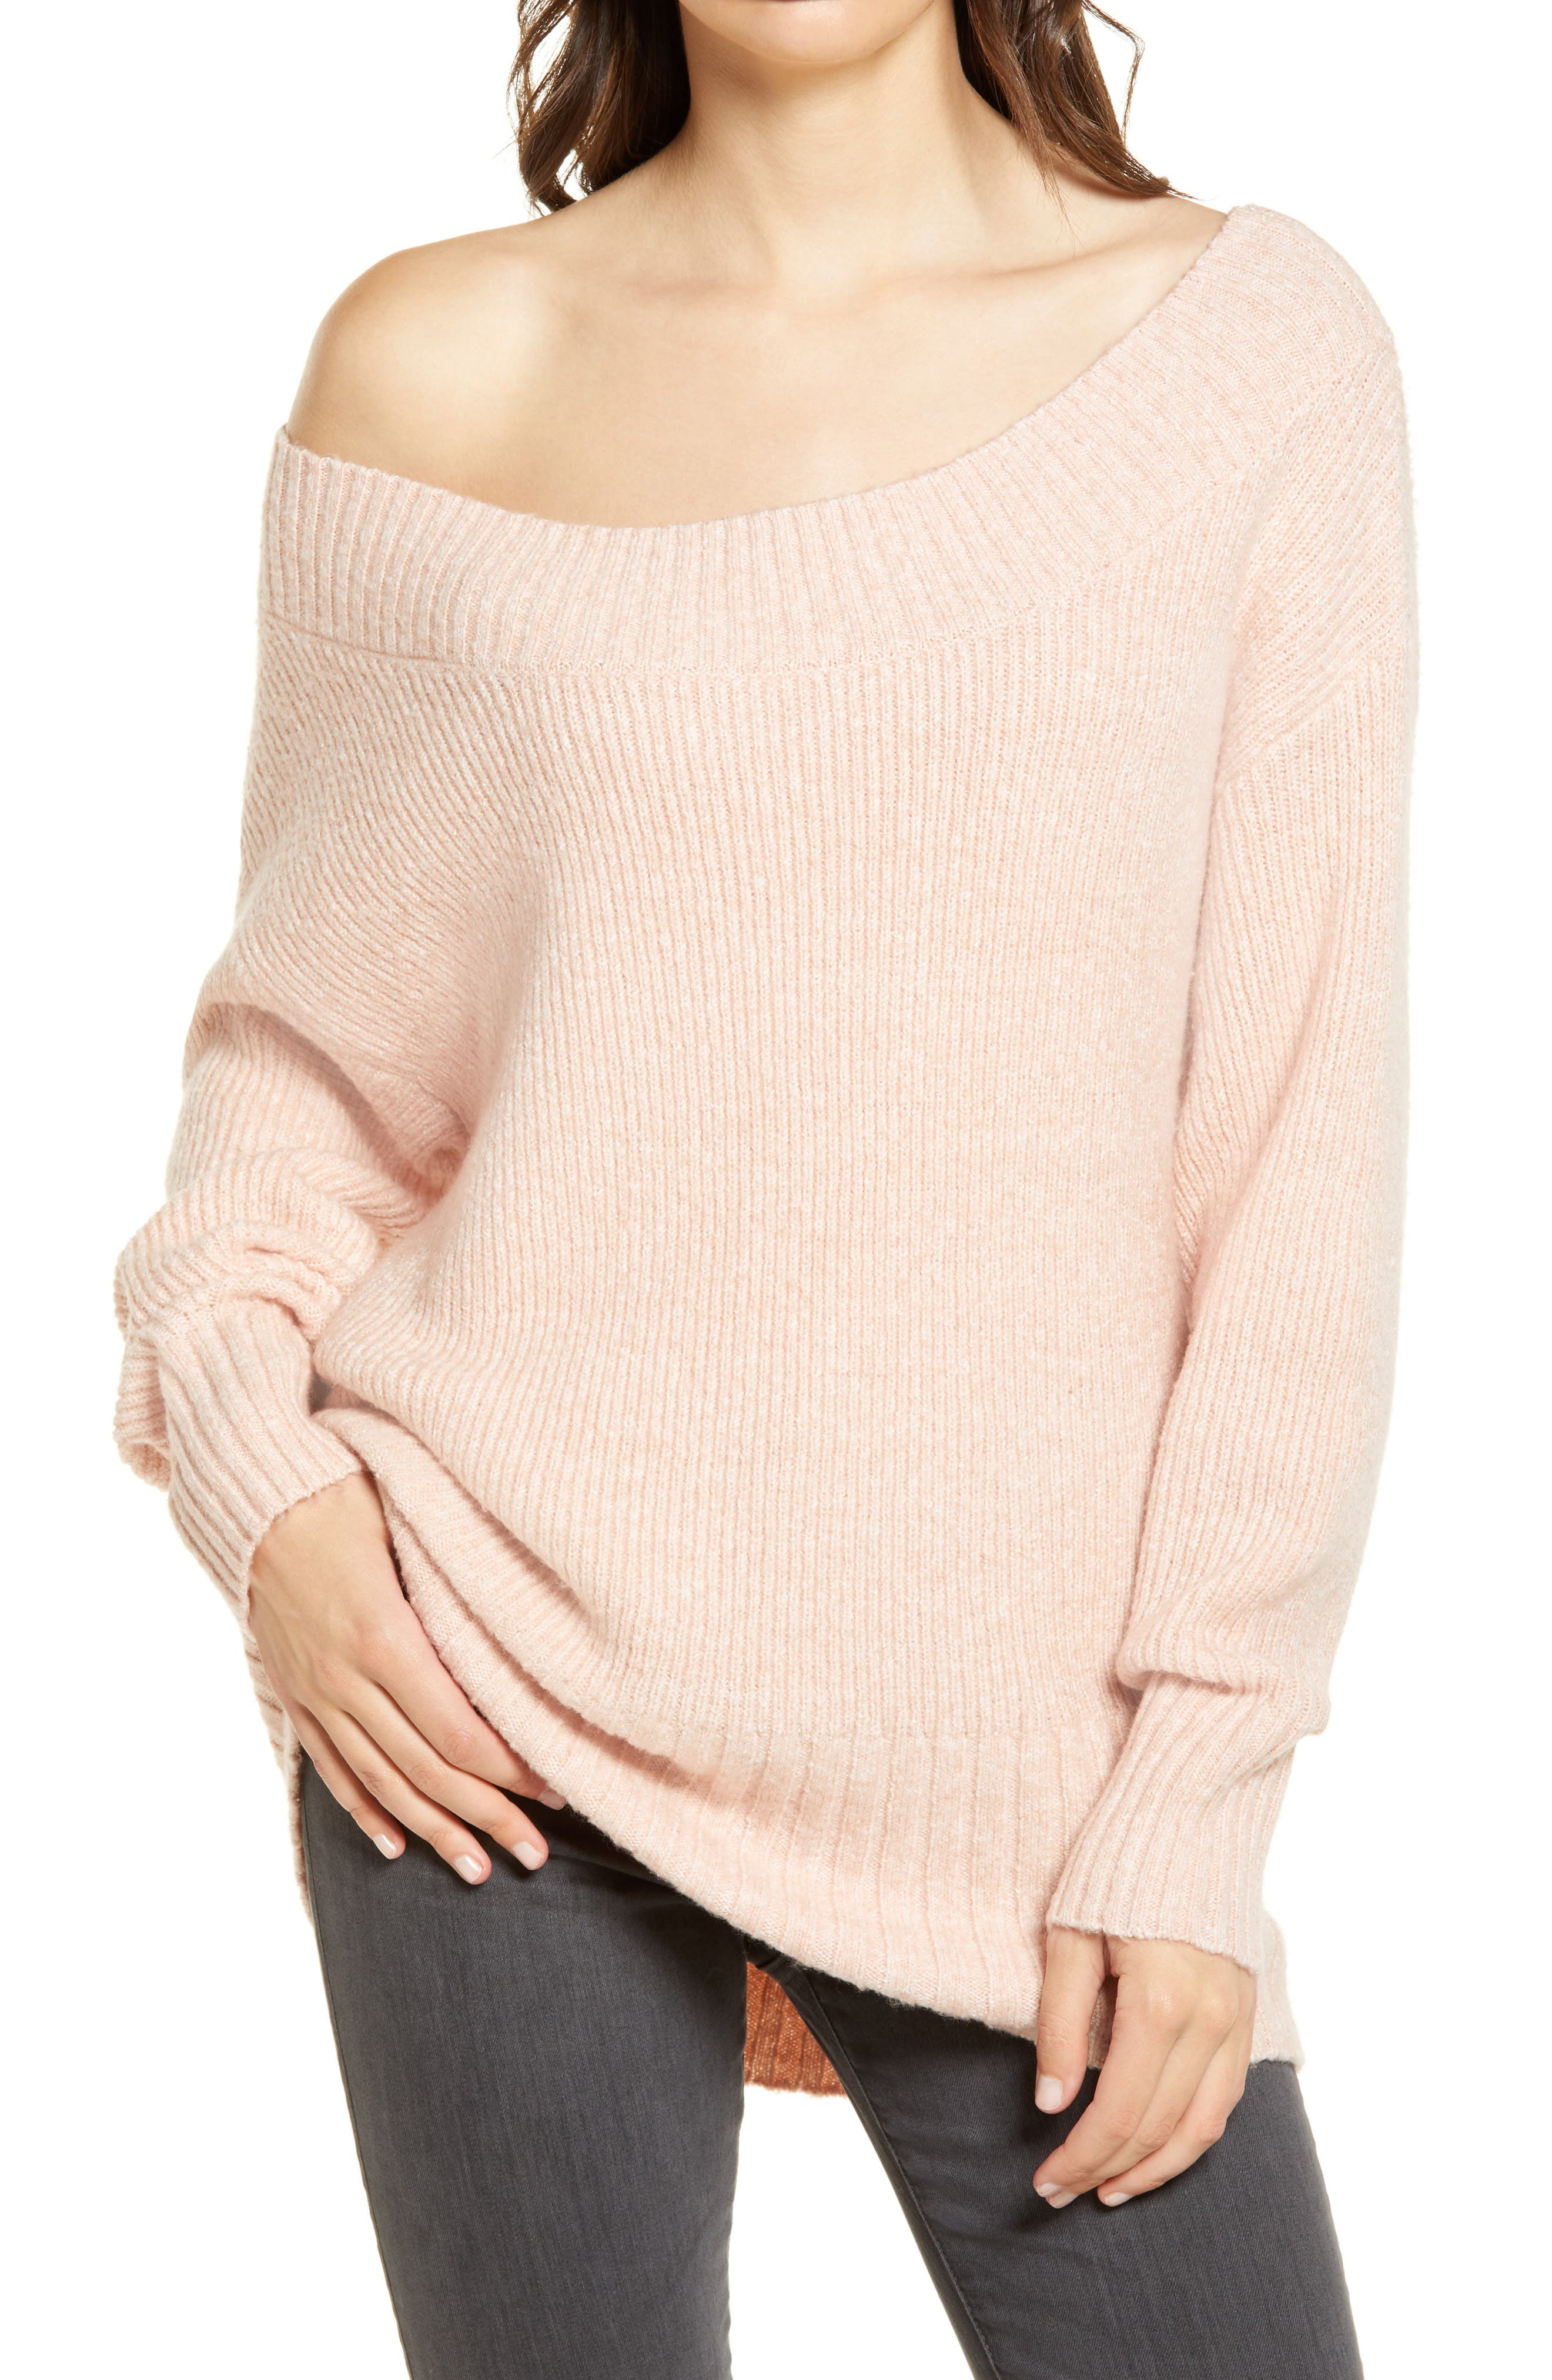 Show off some skin while staying all cozy and cuddled up in this slouchy, shoulder-skimming sweater. Style Name: Chelsea28 Ribbed Off The Shoulder Sweater. Style Number: 6015397. Available in stores.